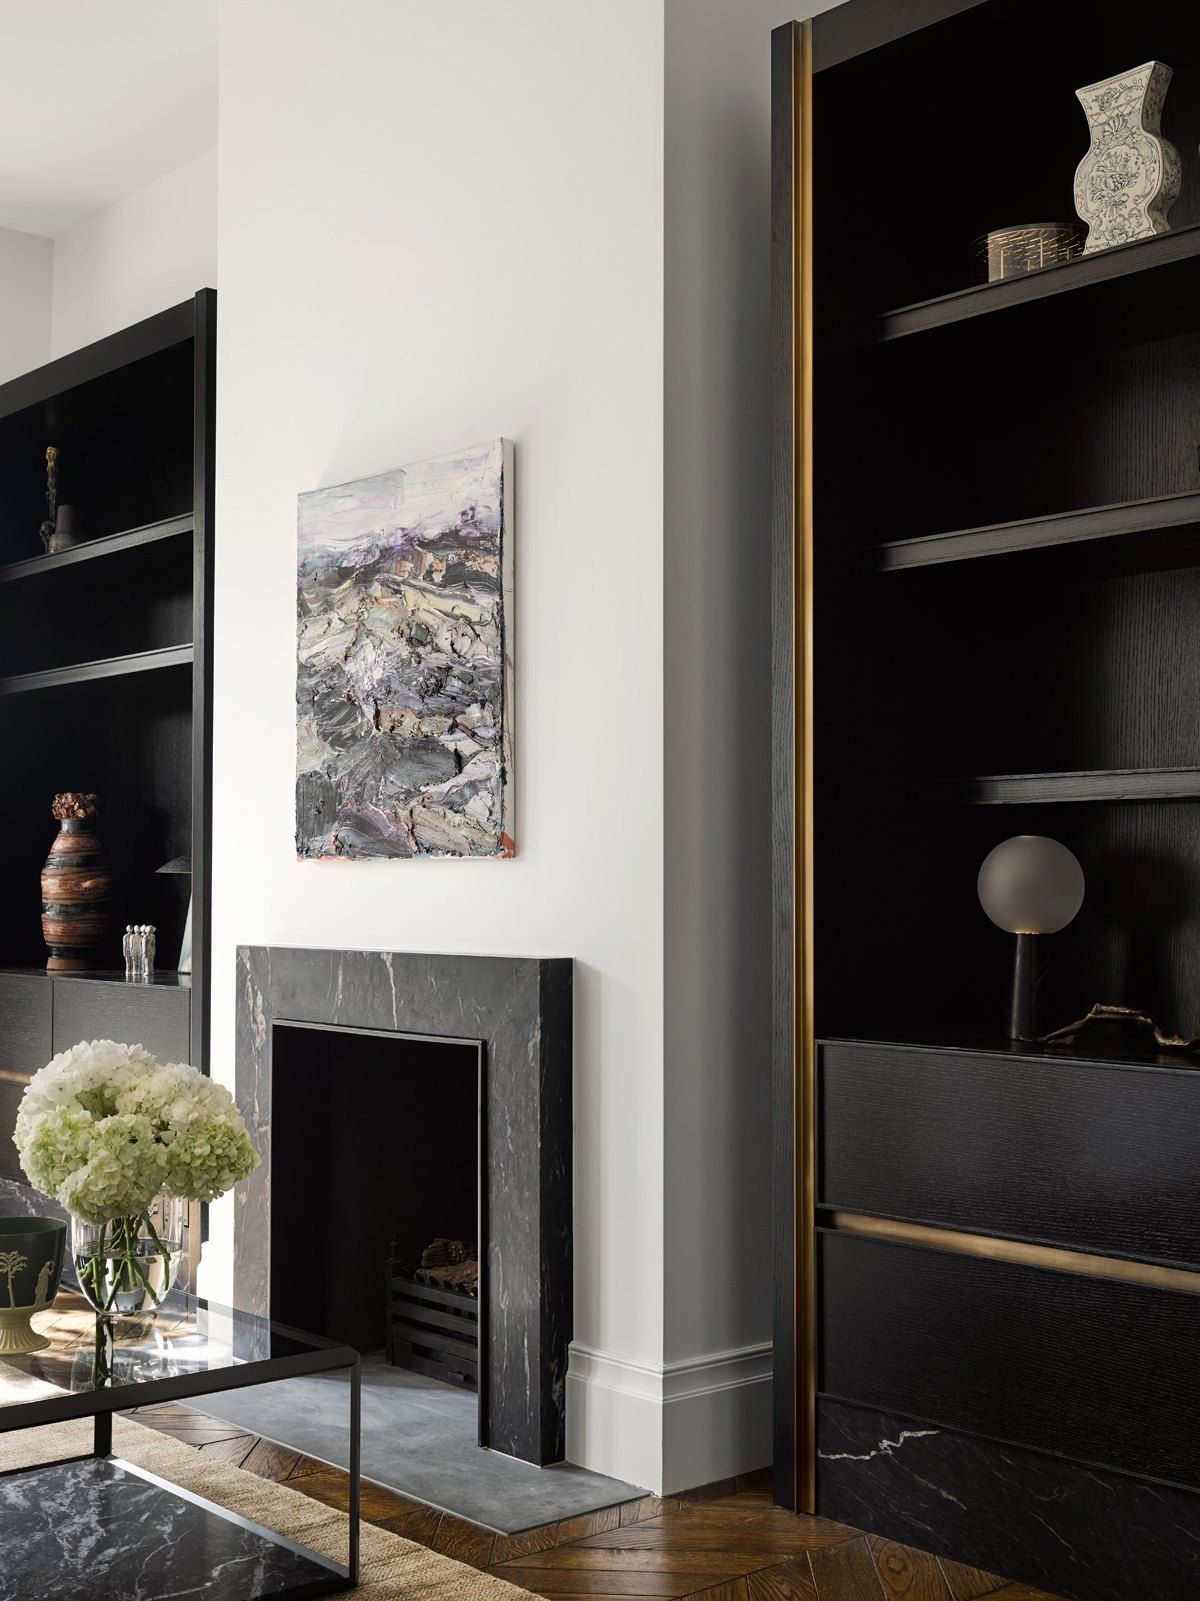 Melbourne residence by flack studio photo by brooke holm styling